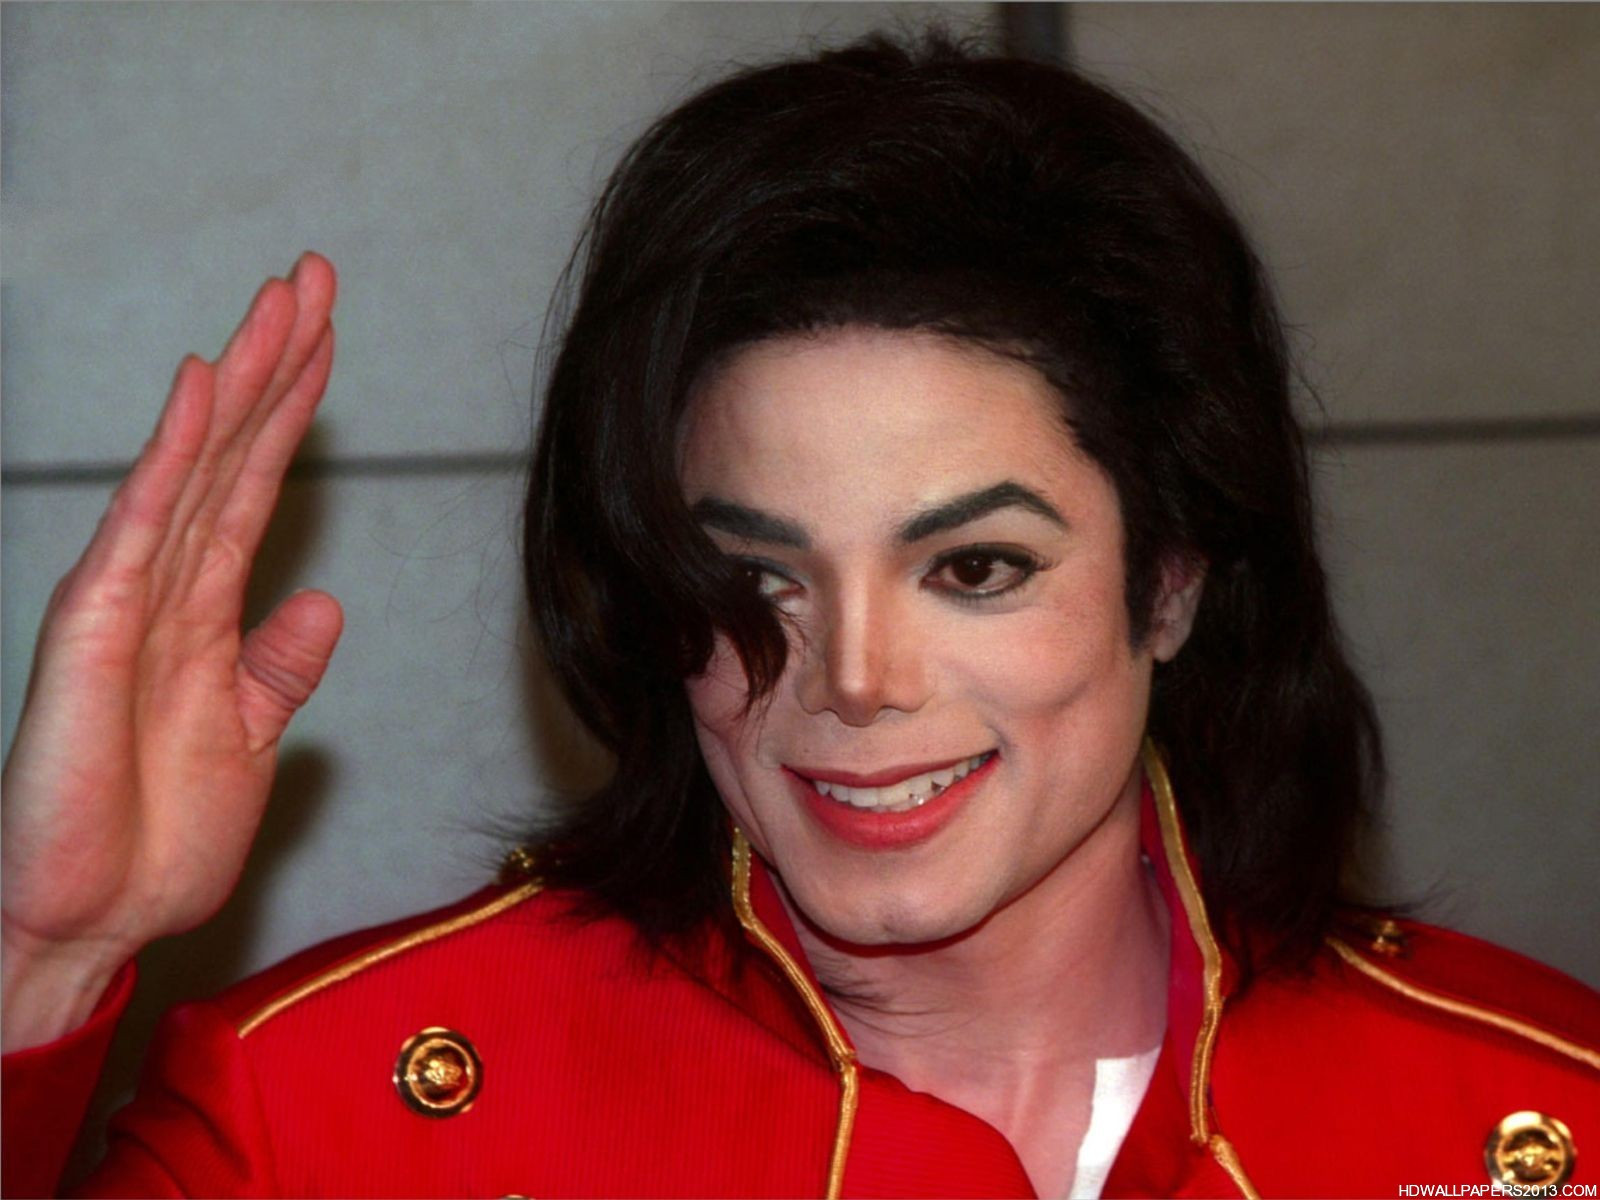 Hairstyles hd wallpapers michael jackson hairstyles hd